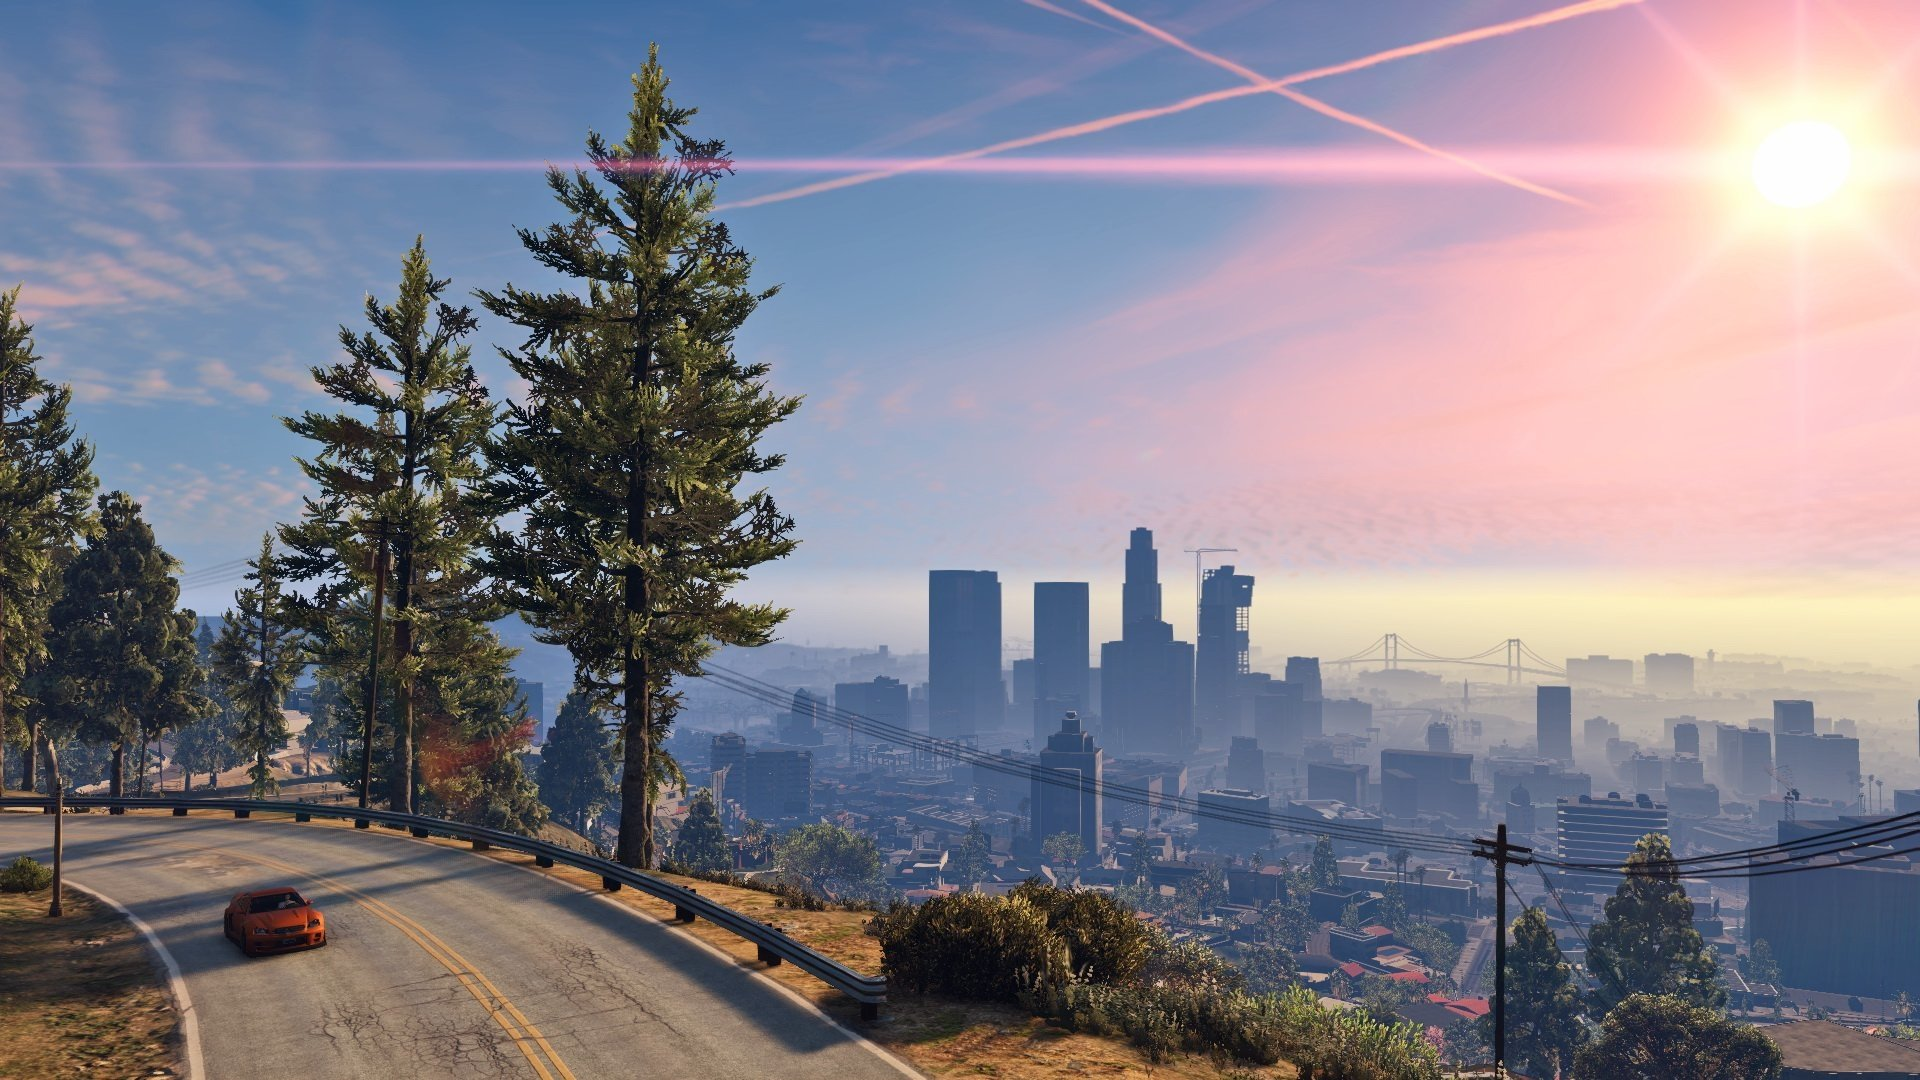 485 Grand Theft Auto V HD Wallpapers   Background Images   Wallpaper     HD Wallpaper   Background Image ID 553248